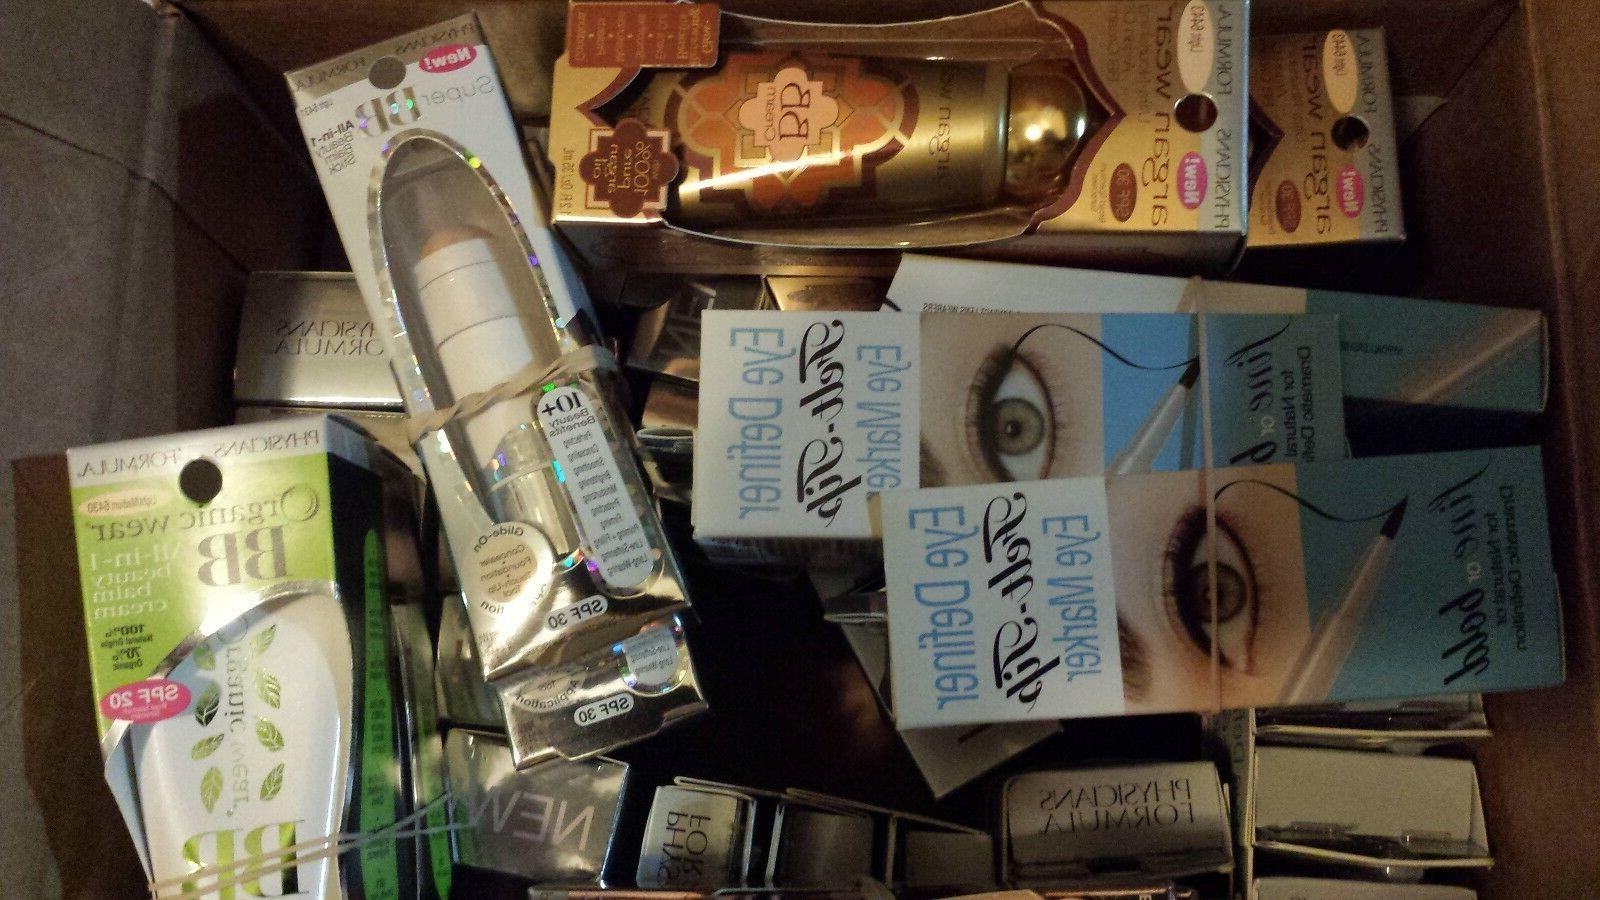 Physicians Formula Bronzer, shimmer, BB,CC Cream,Mineral,City PRICES